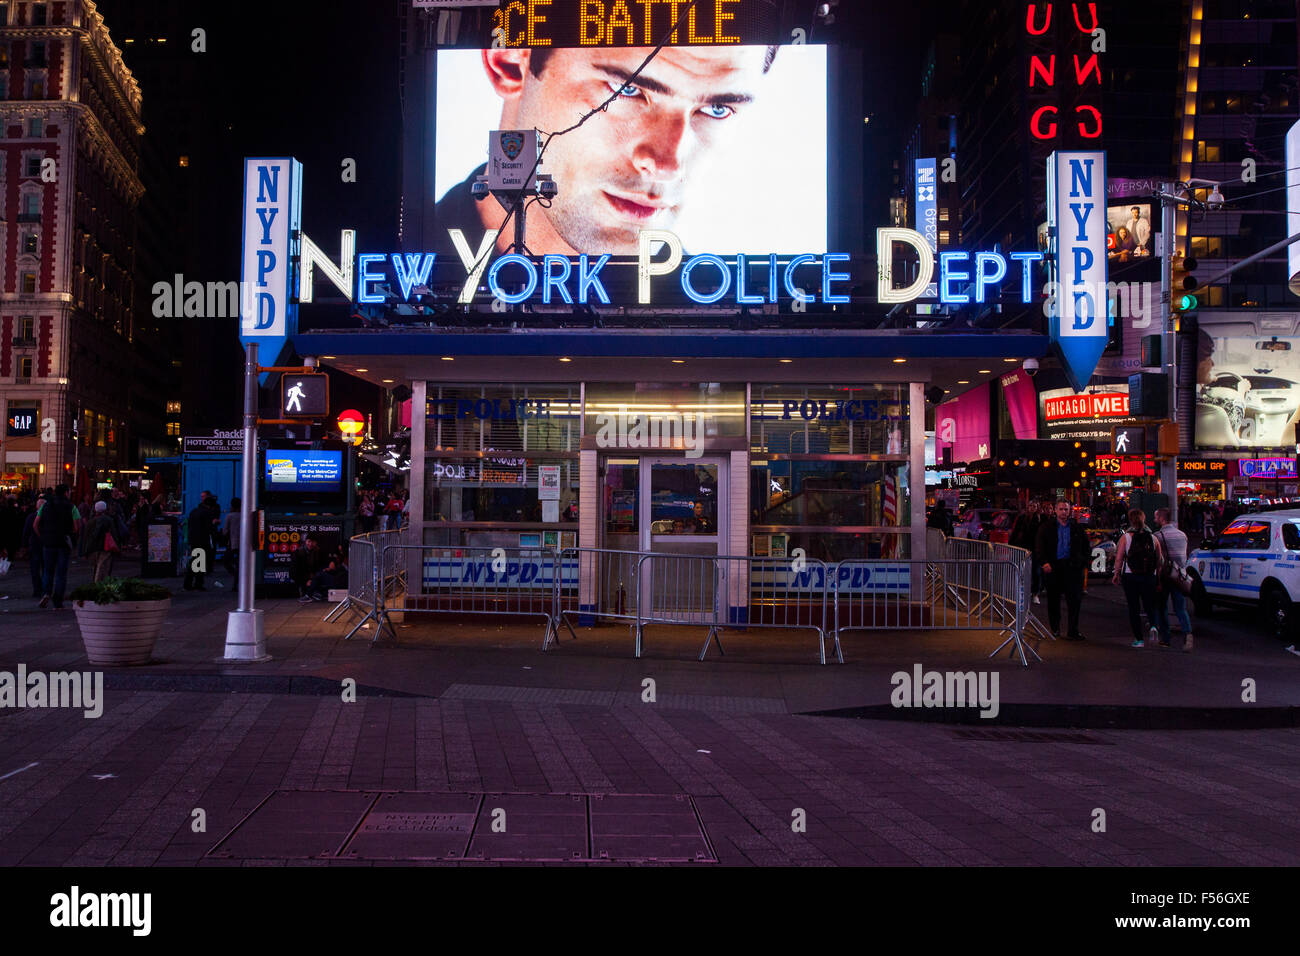 New york police department nypd times square at night midtown manhattan new york city united states of america